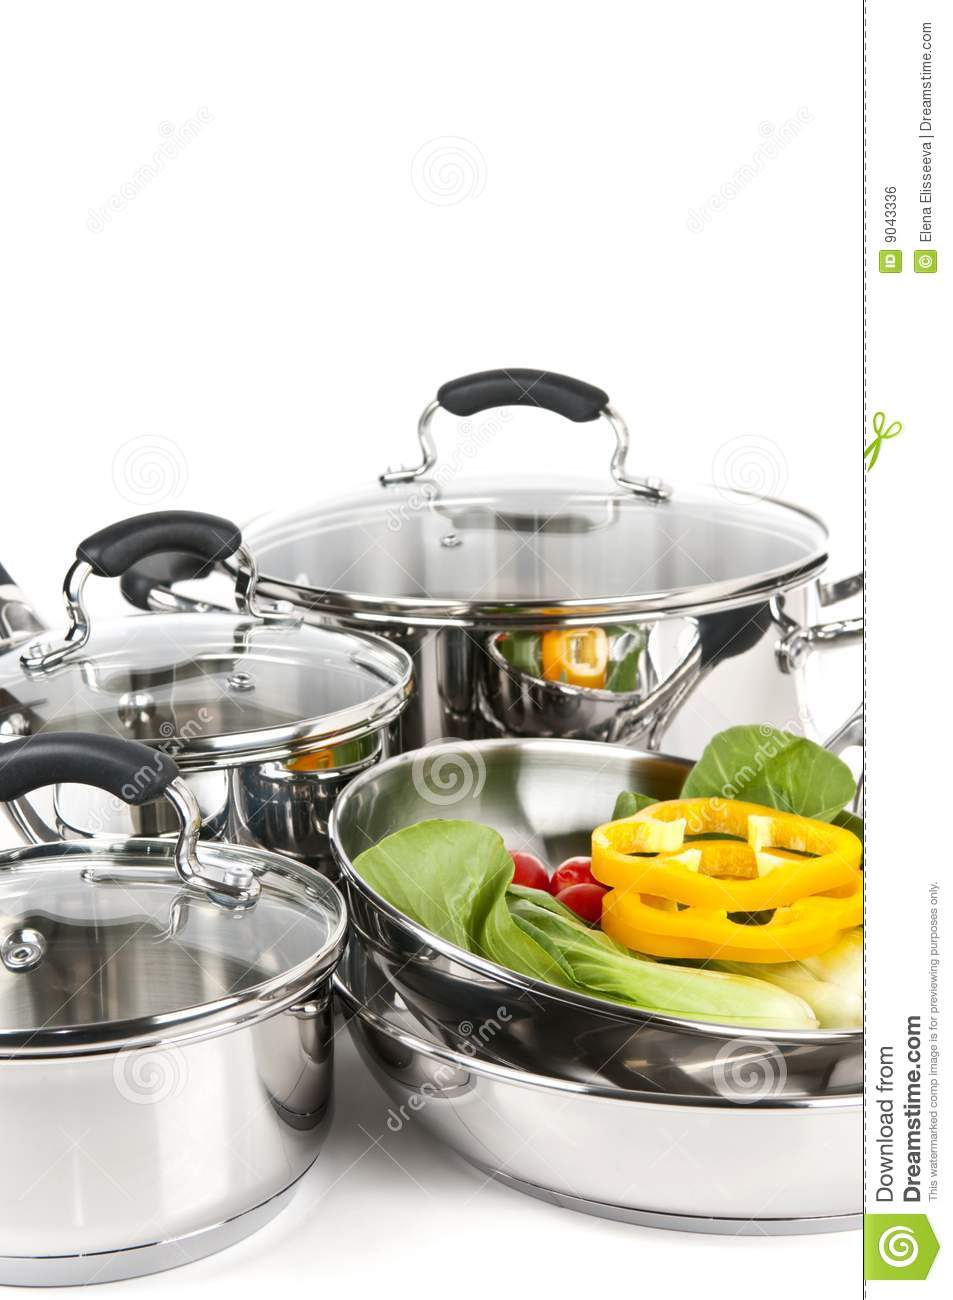 stainless steel pots and pans with vegetables royalty free stock image image 9043336. Black Bedroom Furniture Sets. Home Design Ideas